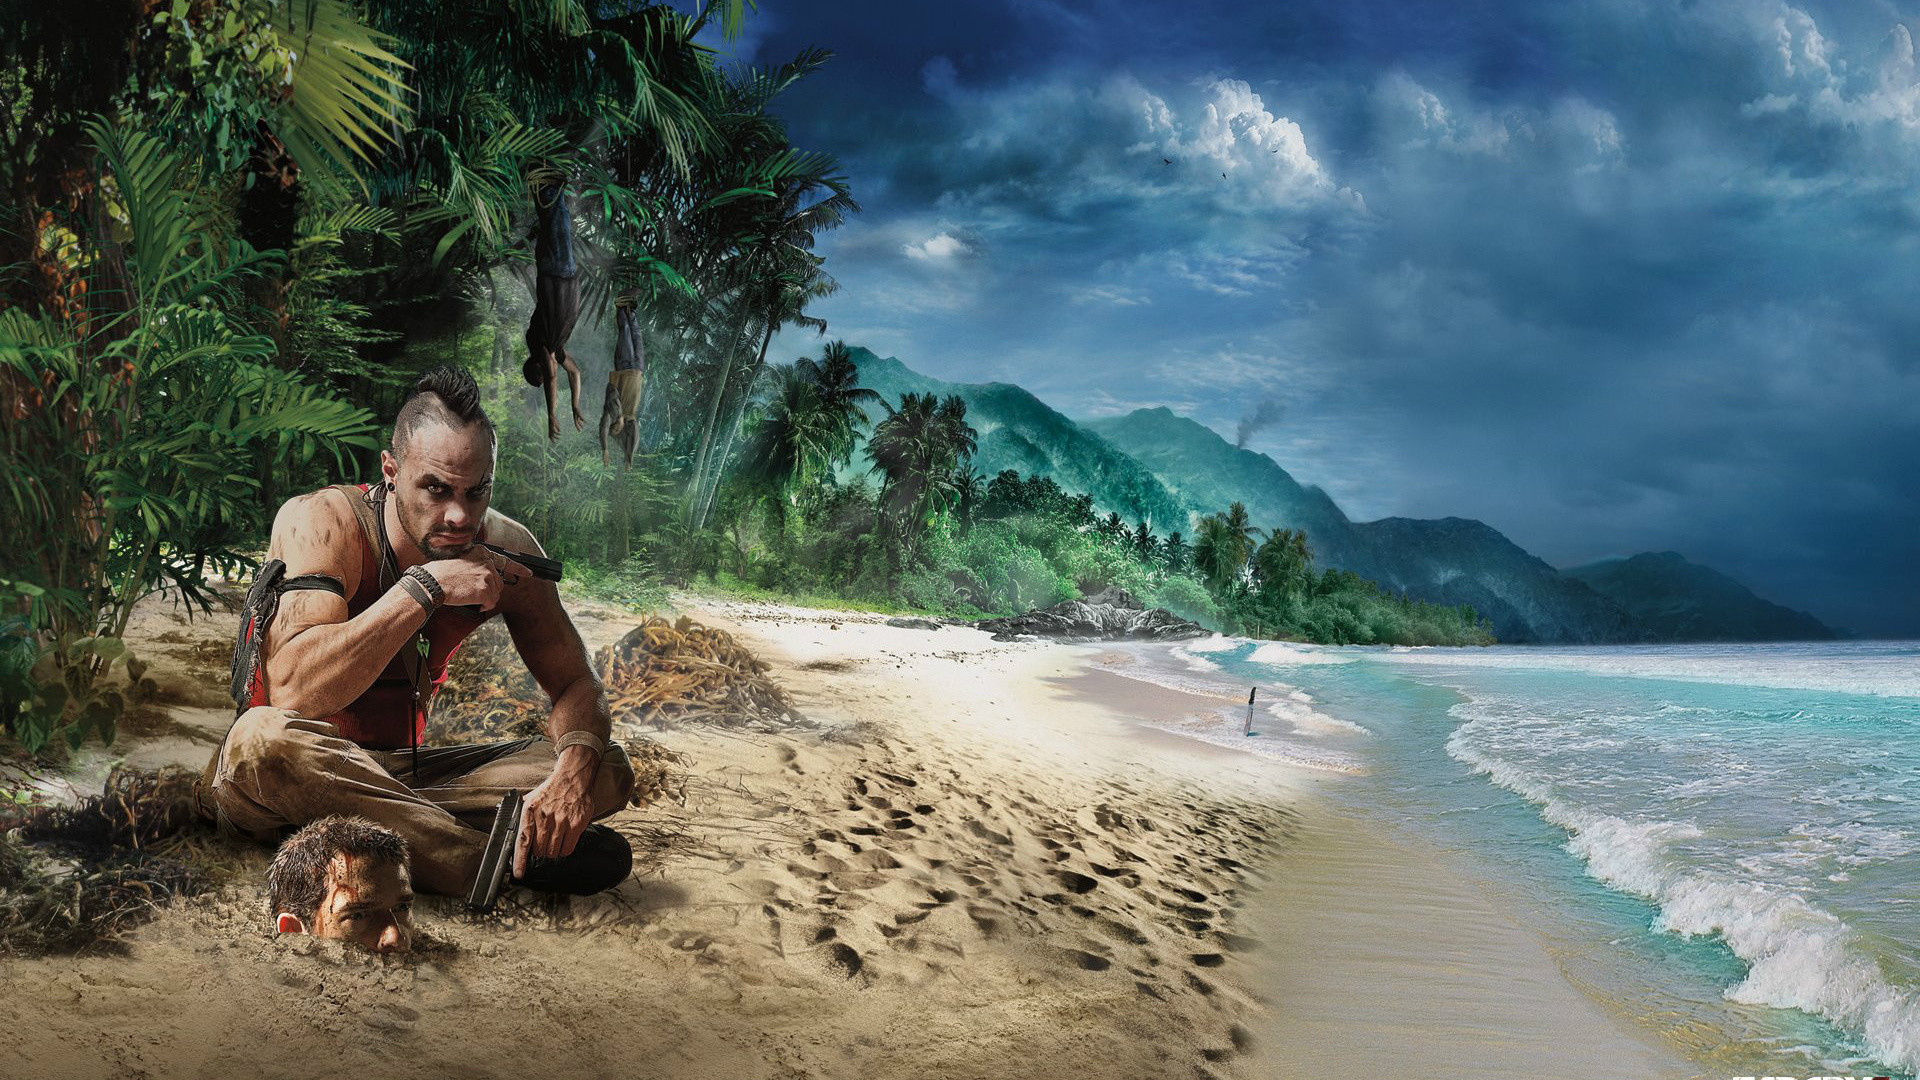 Wallpaper far cry 3, beach, game, graphics, hdr